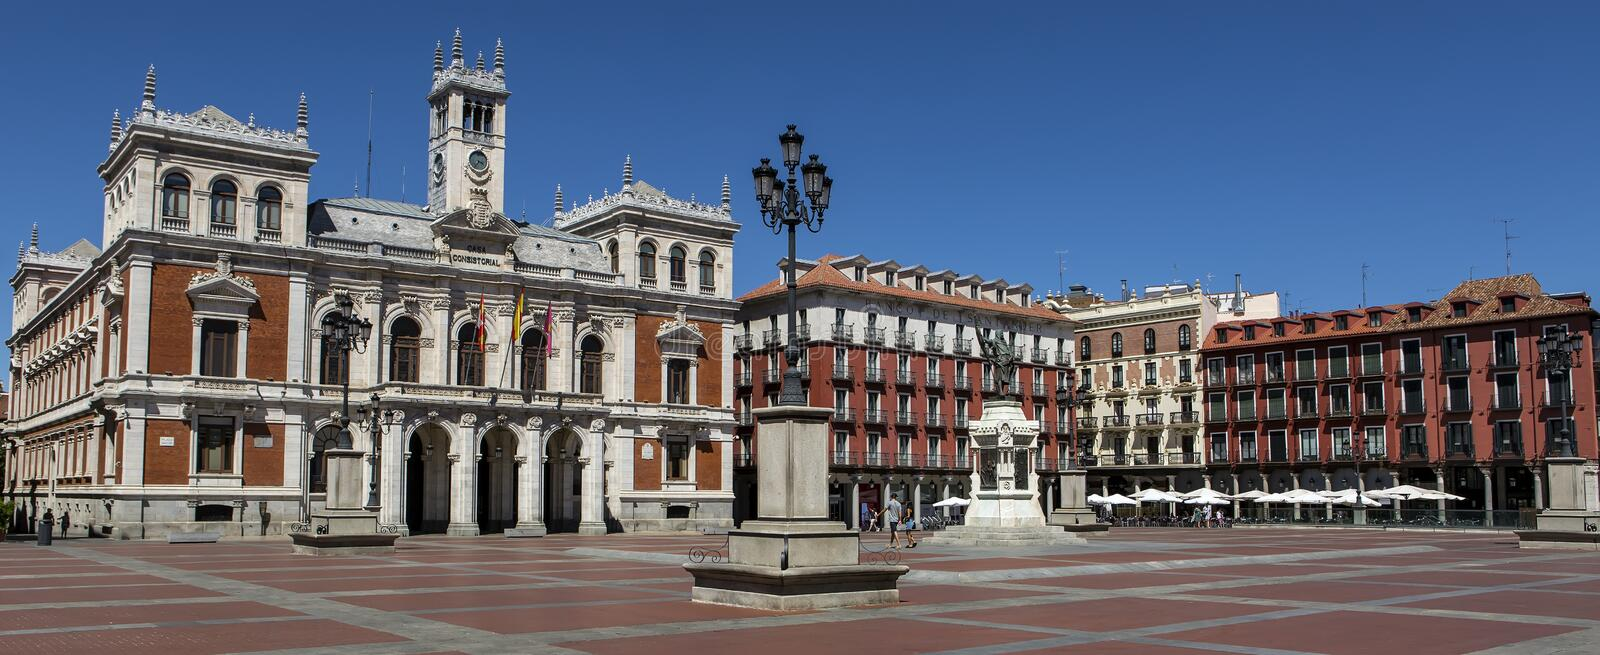 Plaza Mayor Major Square of Valladolid, Spain. stock image